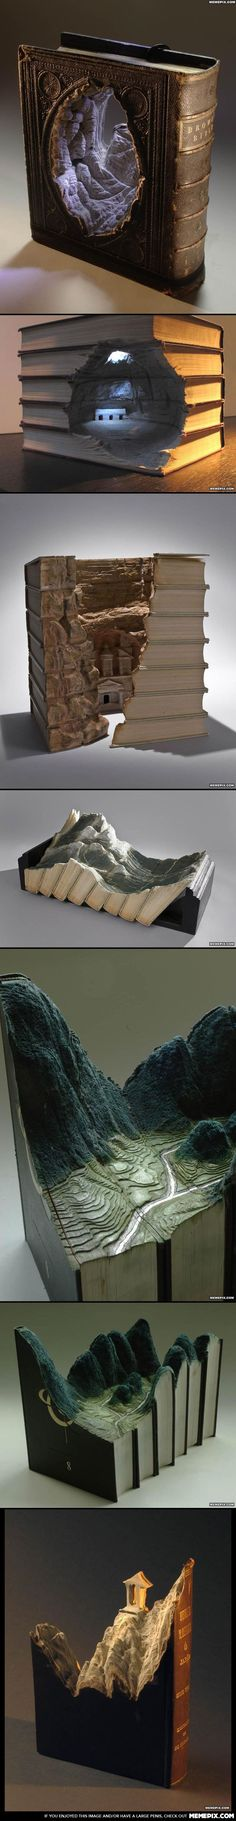 landscapes carved in books